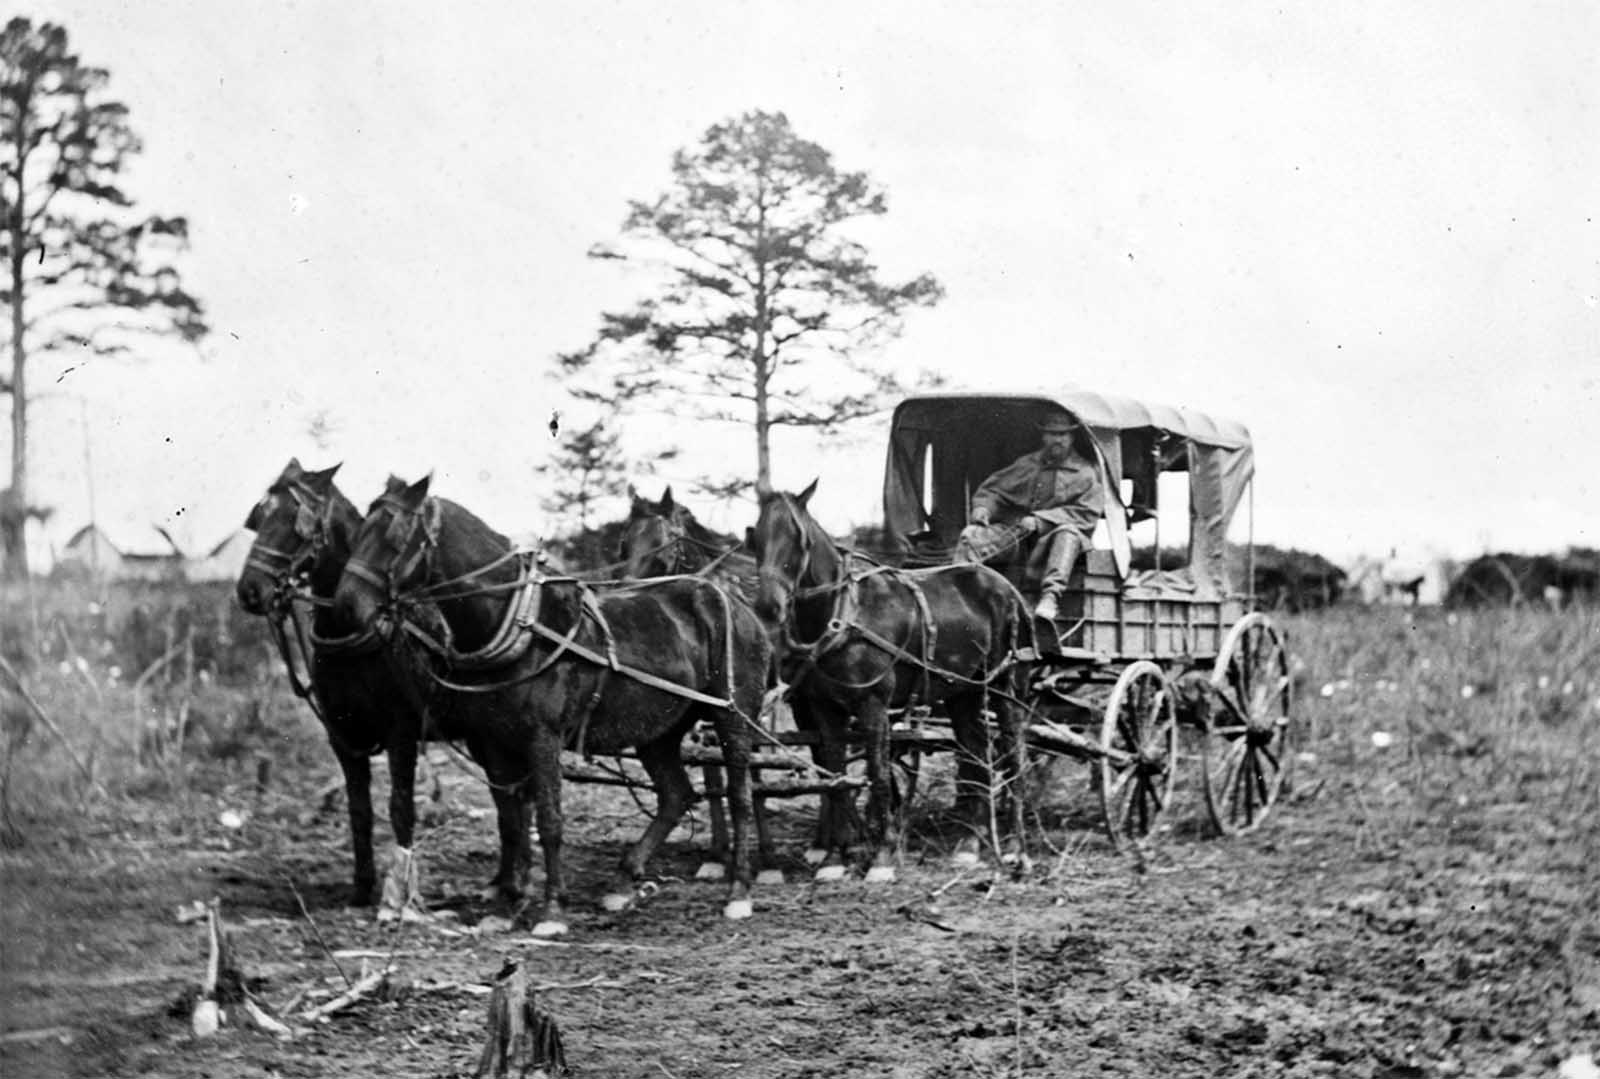 Mail wagon for headquarters, Army of the Potomac, at Falmouth, Virginia, March 1863.